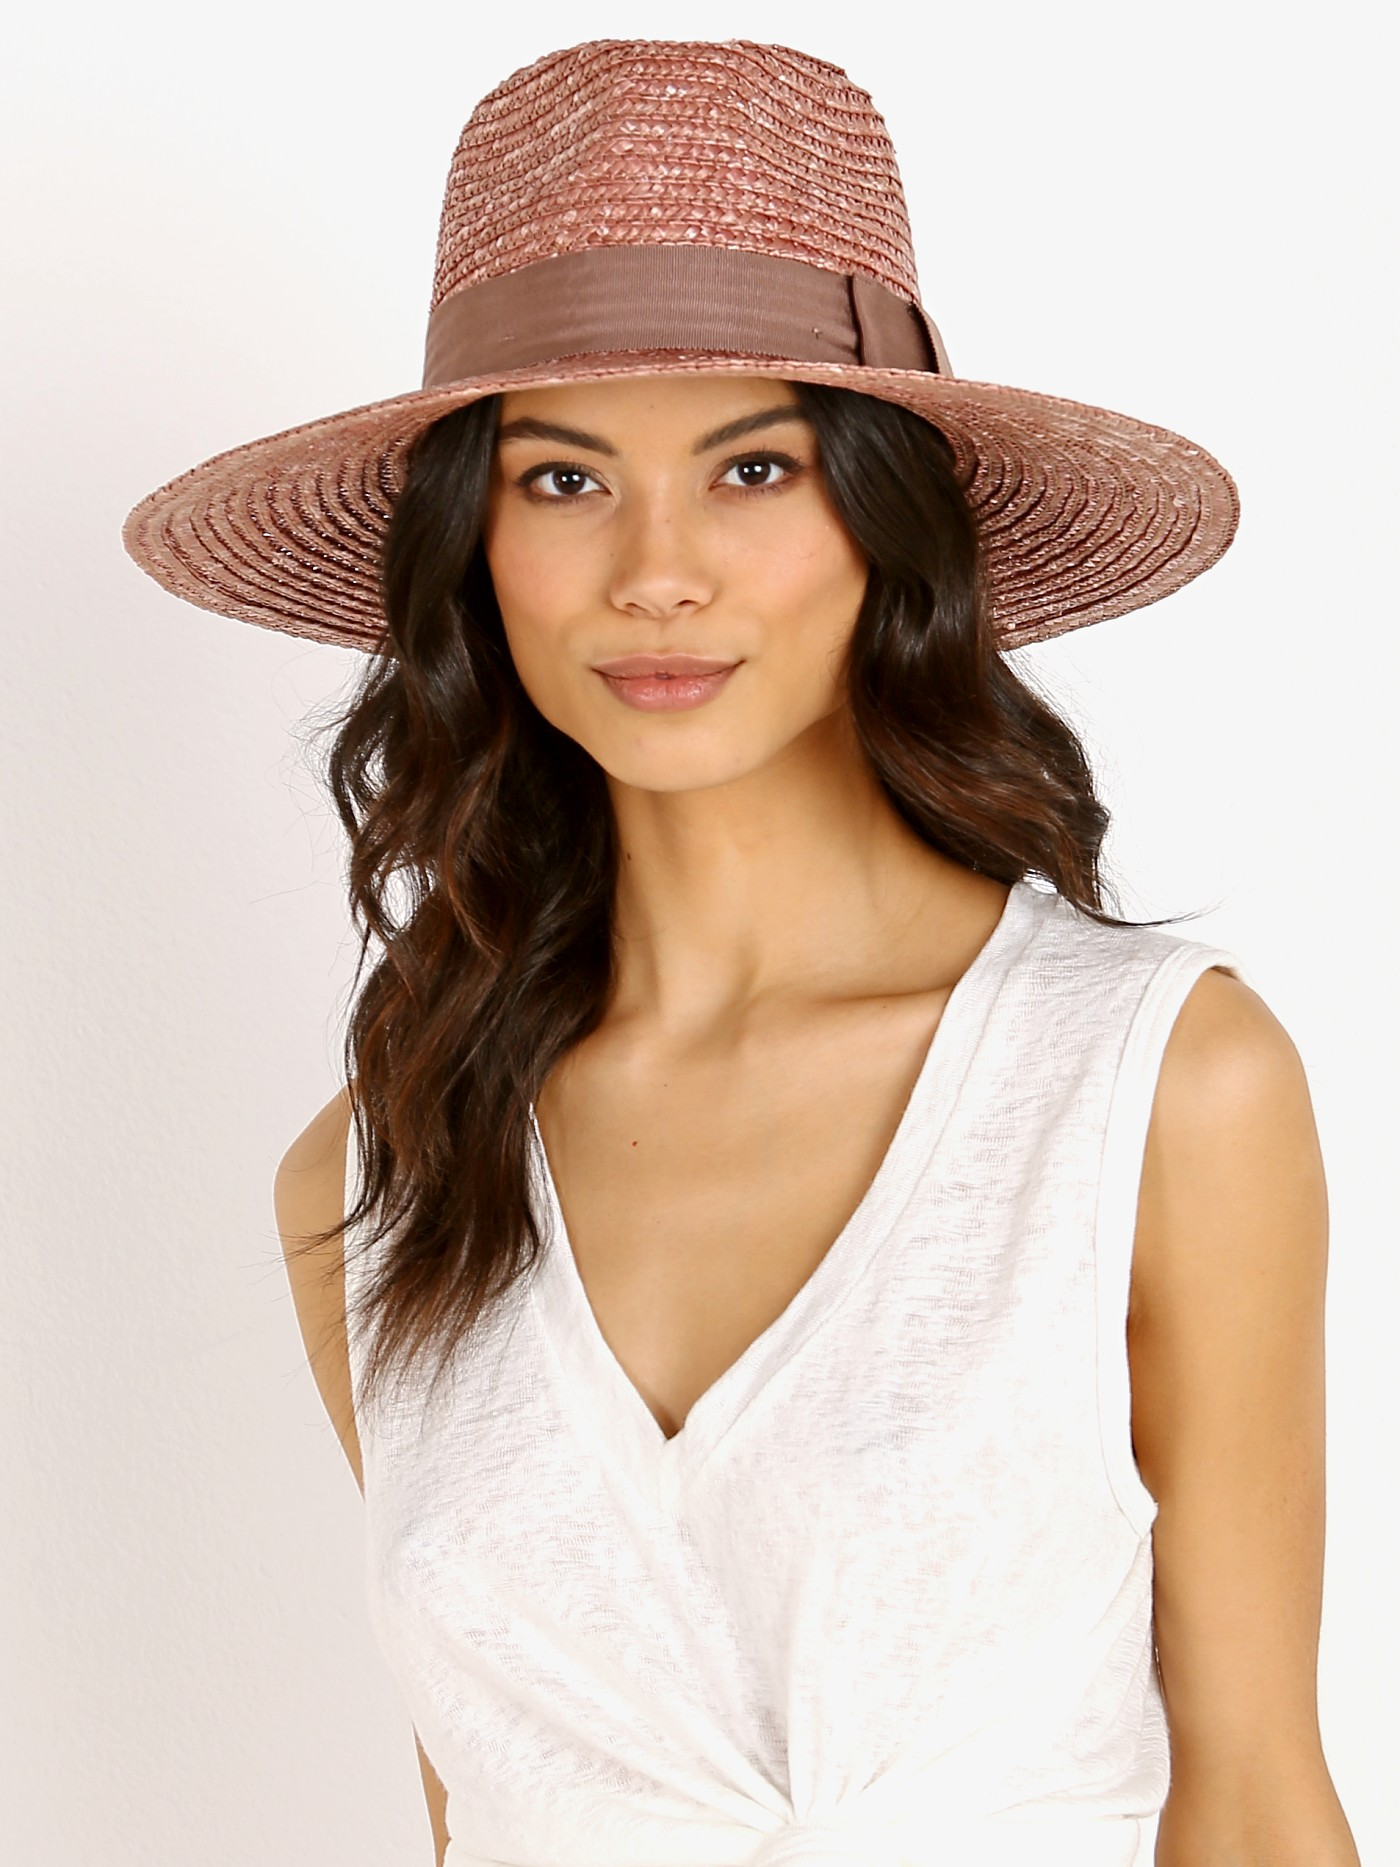 af16a8f3683c2 ... switzerland brixton joanna hat lilac 00249 lilac free shipping at largo  drive ee7b5 baee2